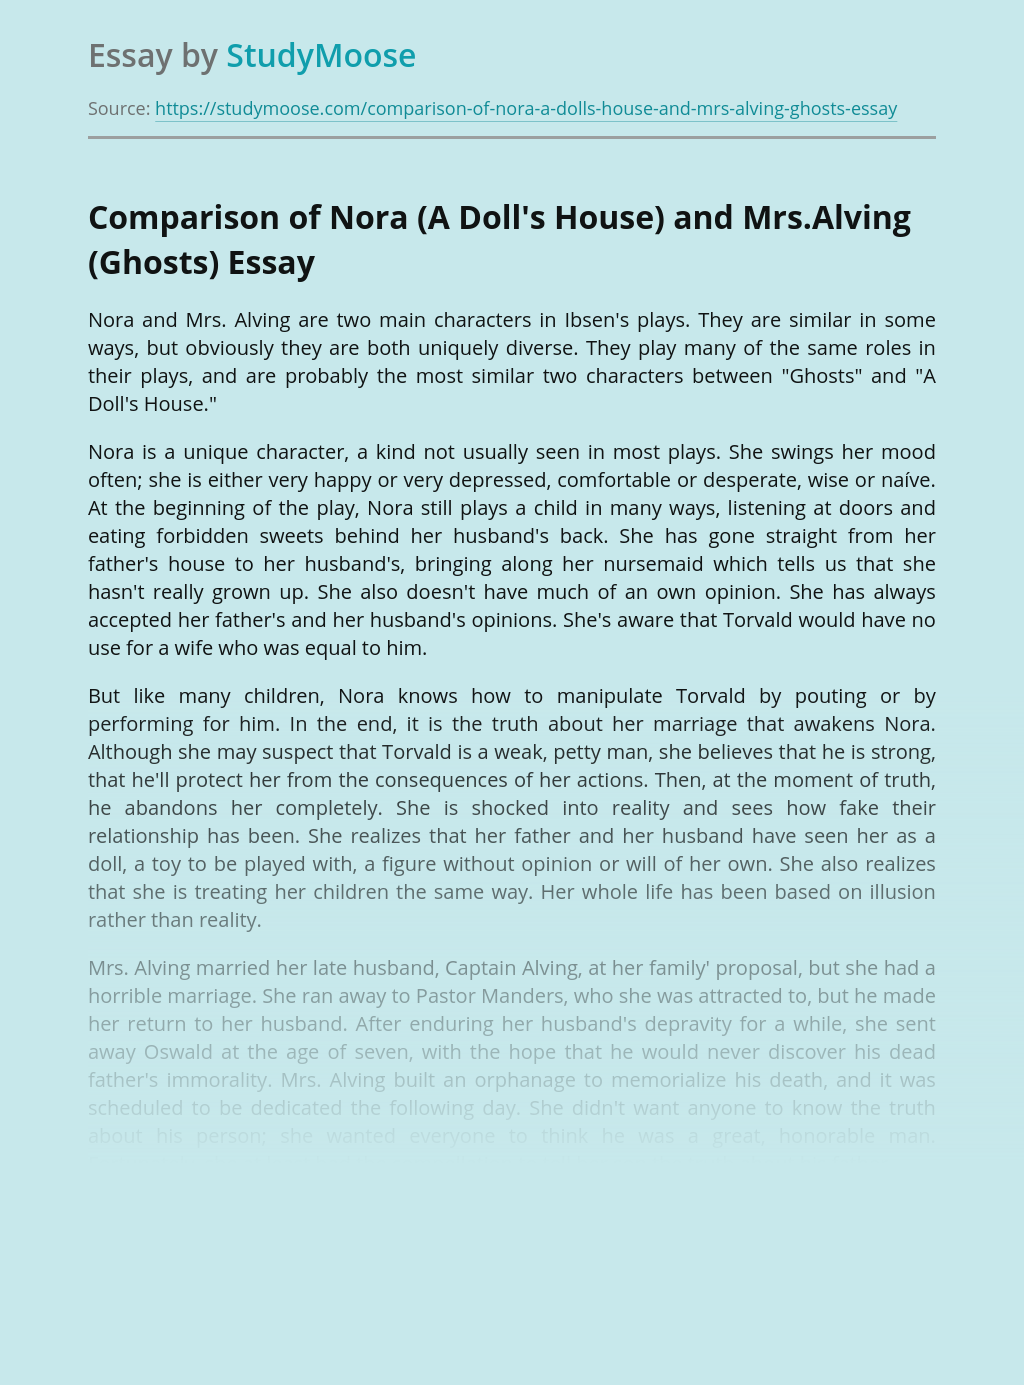 Comparison of Nora (A Doll's House) and Mrs.Alving (Ghosts)